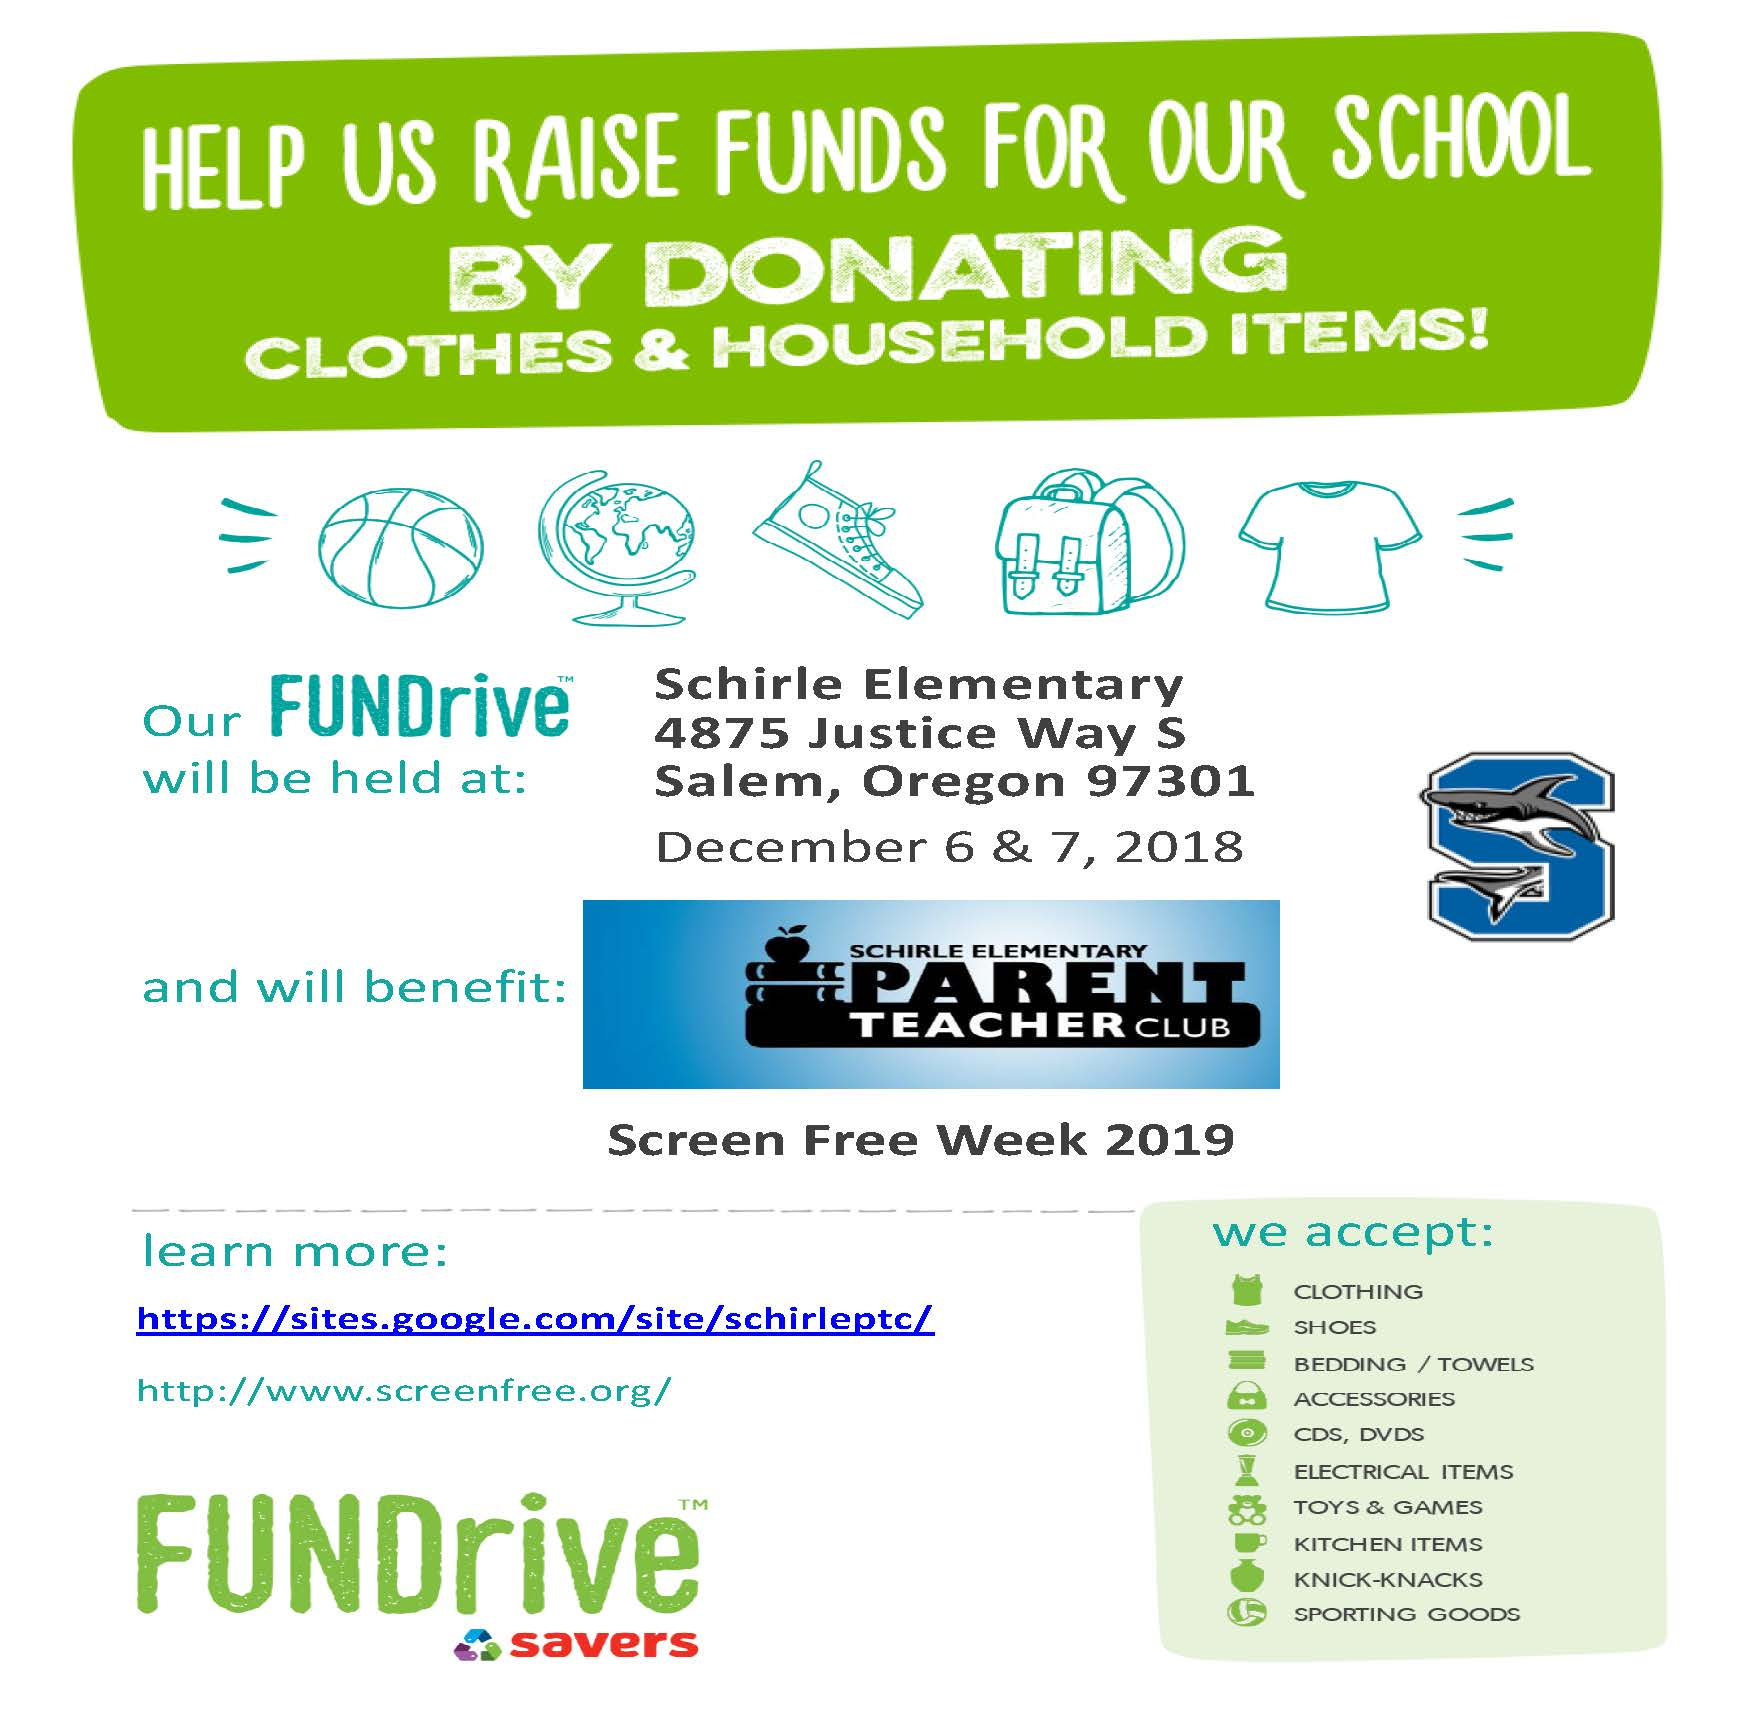 Help us raise funds for our school!